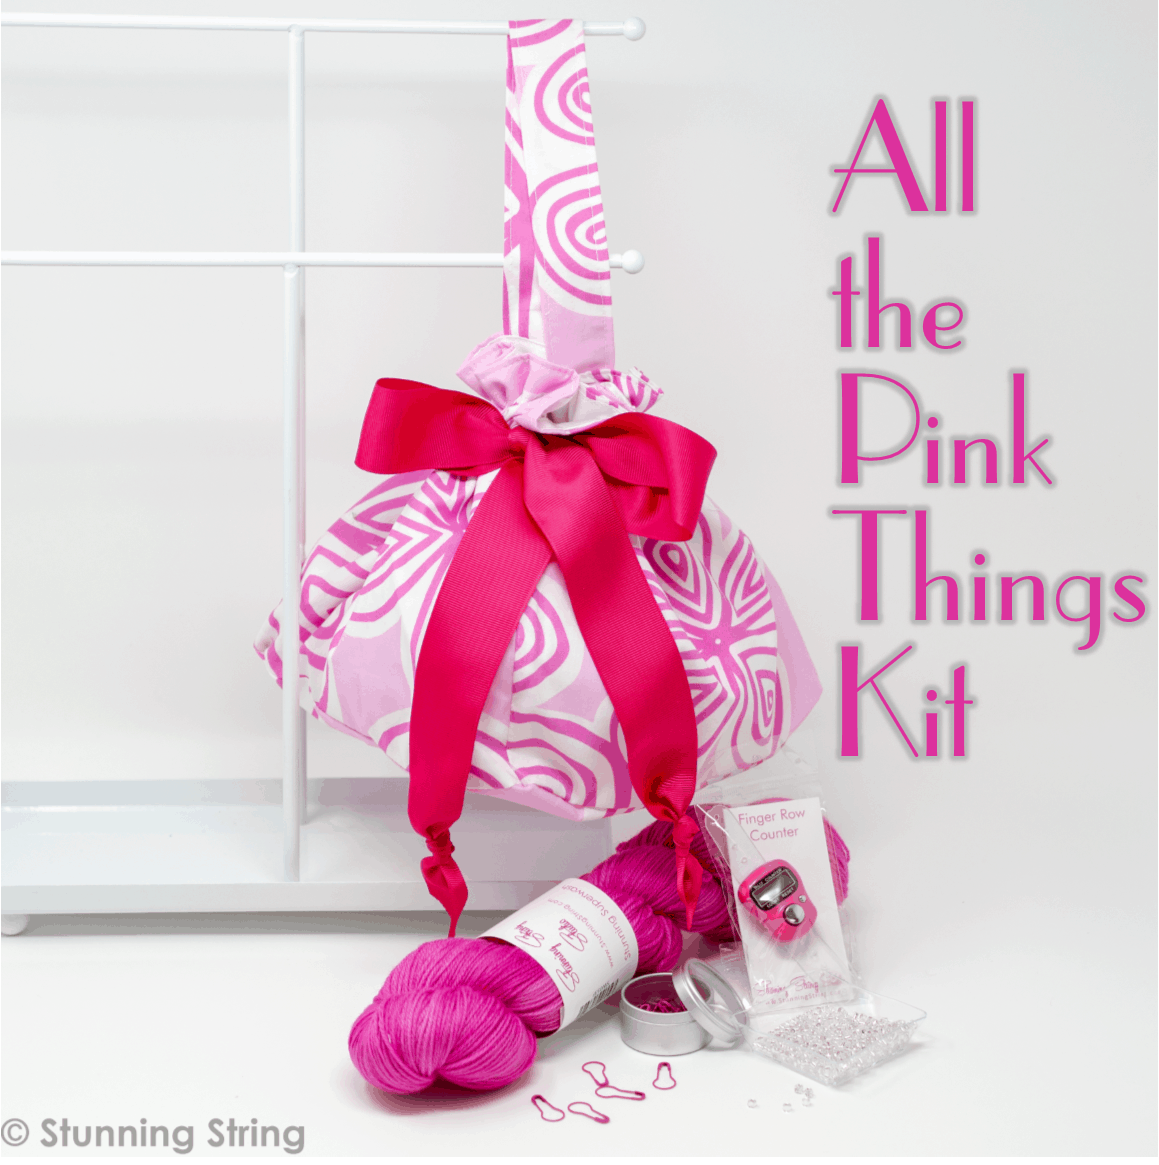 All the Pink Things Small Batch Kit